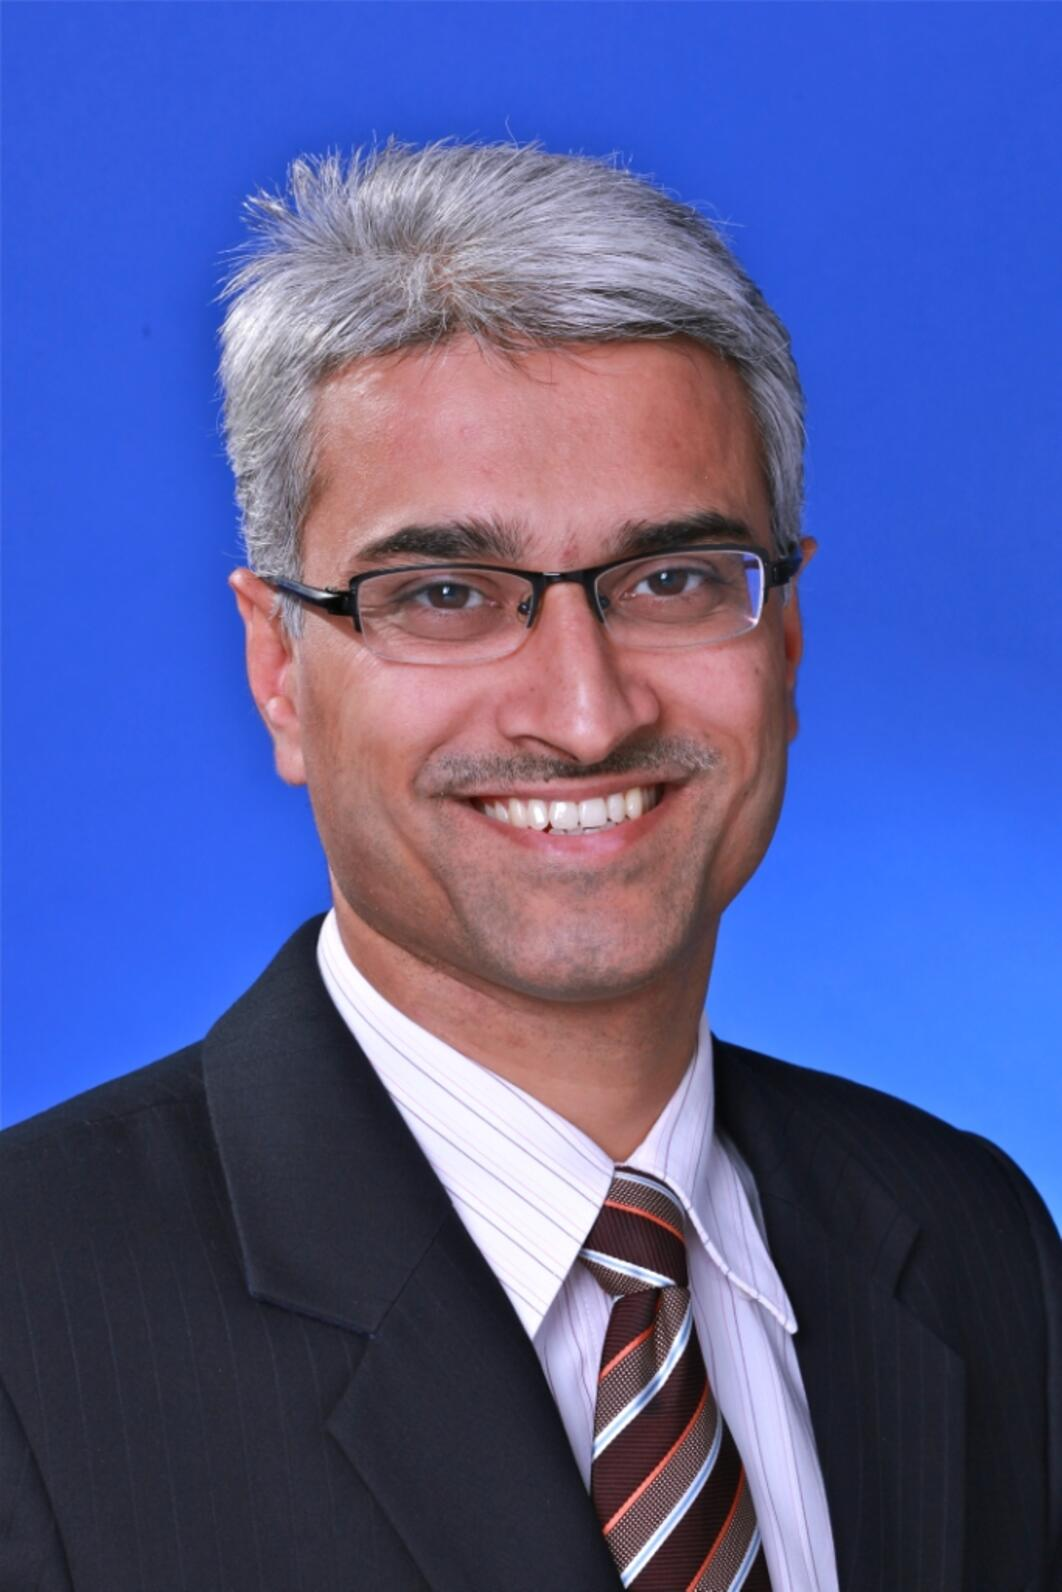 Sharad Somani, Head of Infrastructure, KPMG Asia Pacific